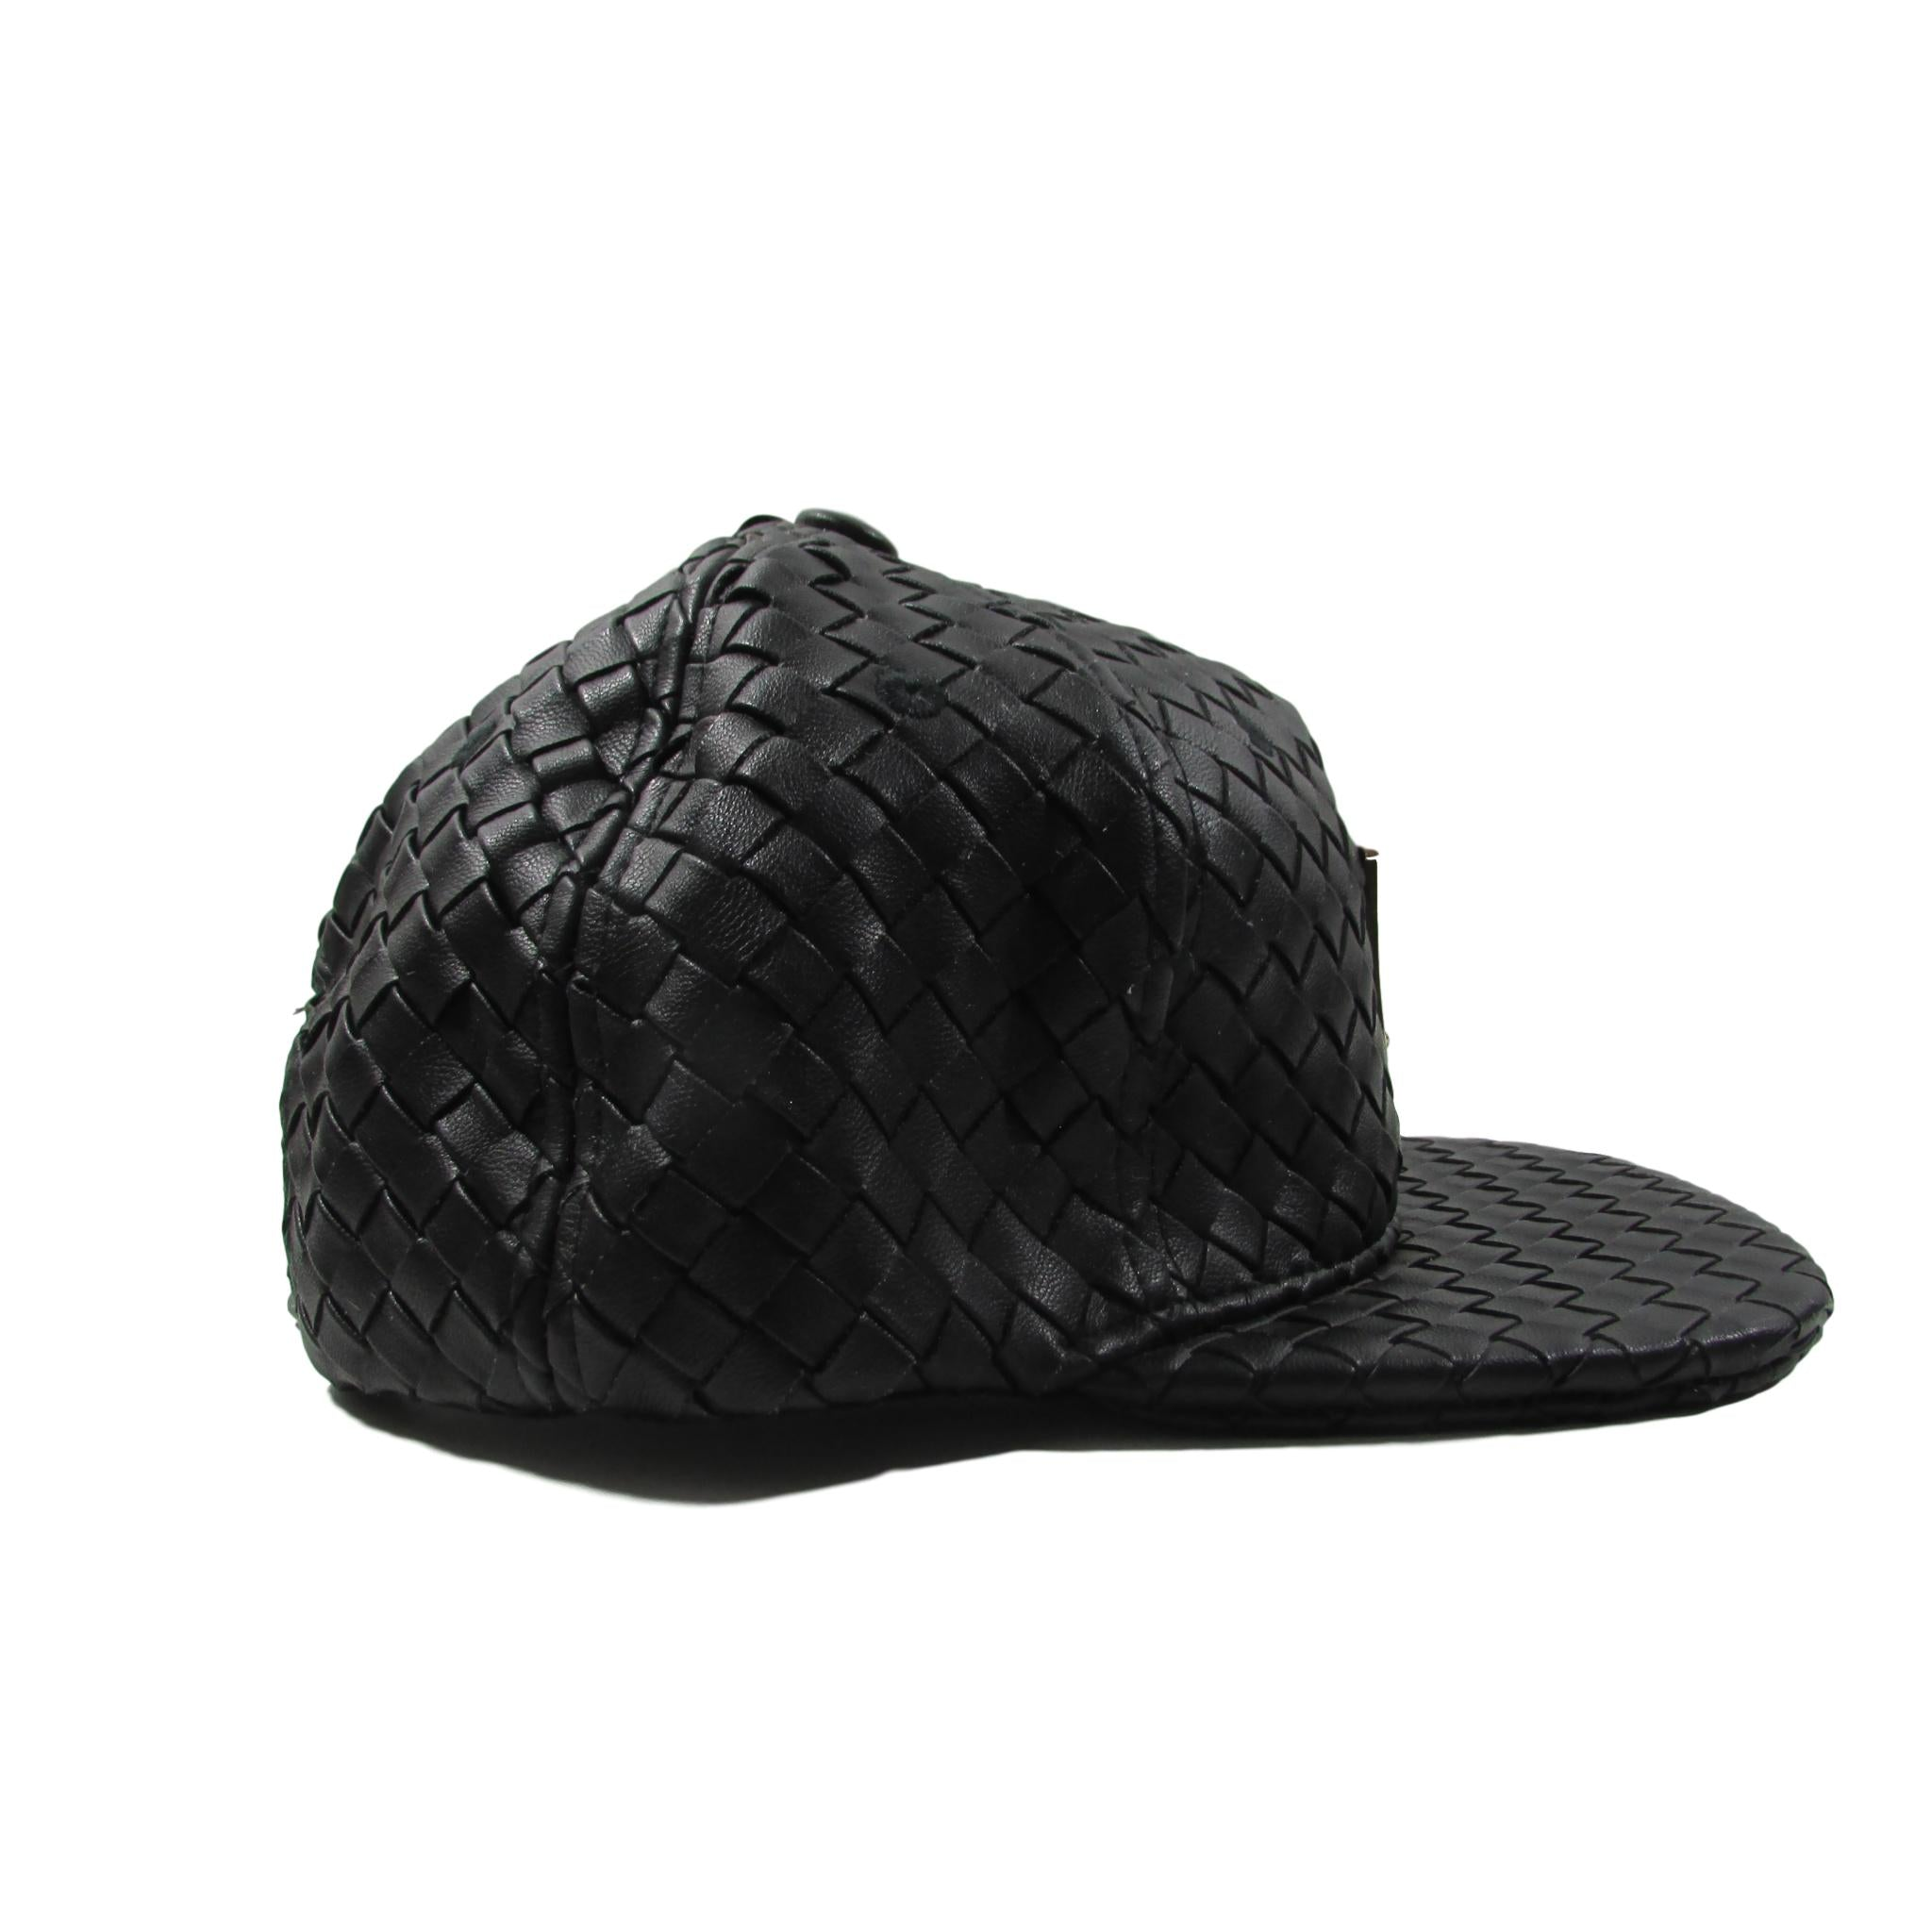 bb62d8b1a1d HATer Full Intrecciato Woven Black Premium Leather Snapback Hat ...